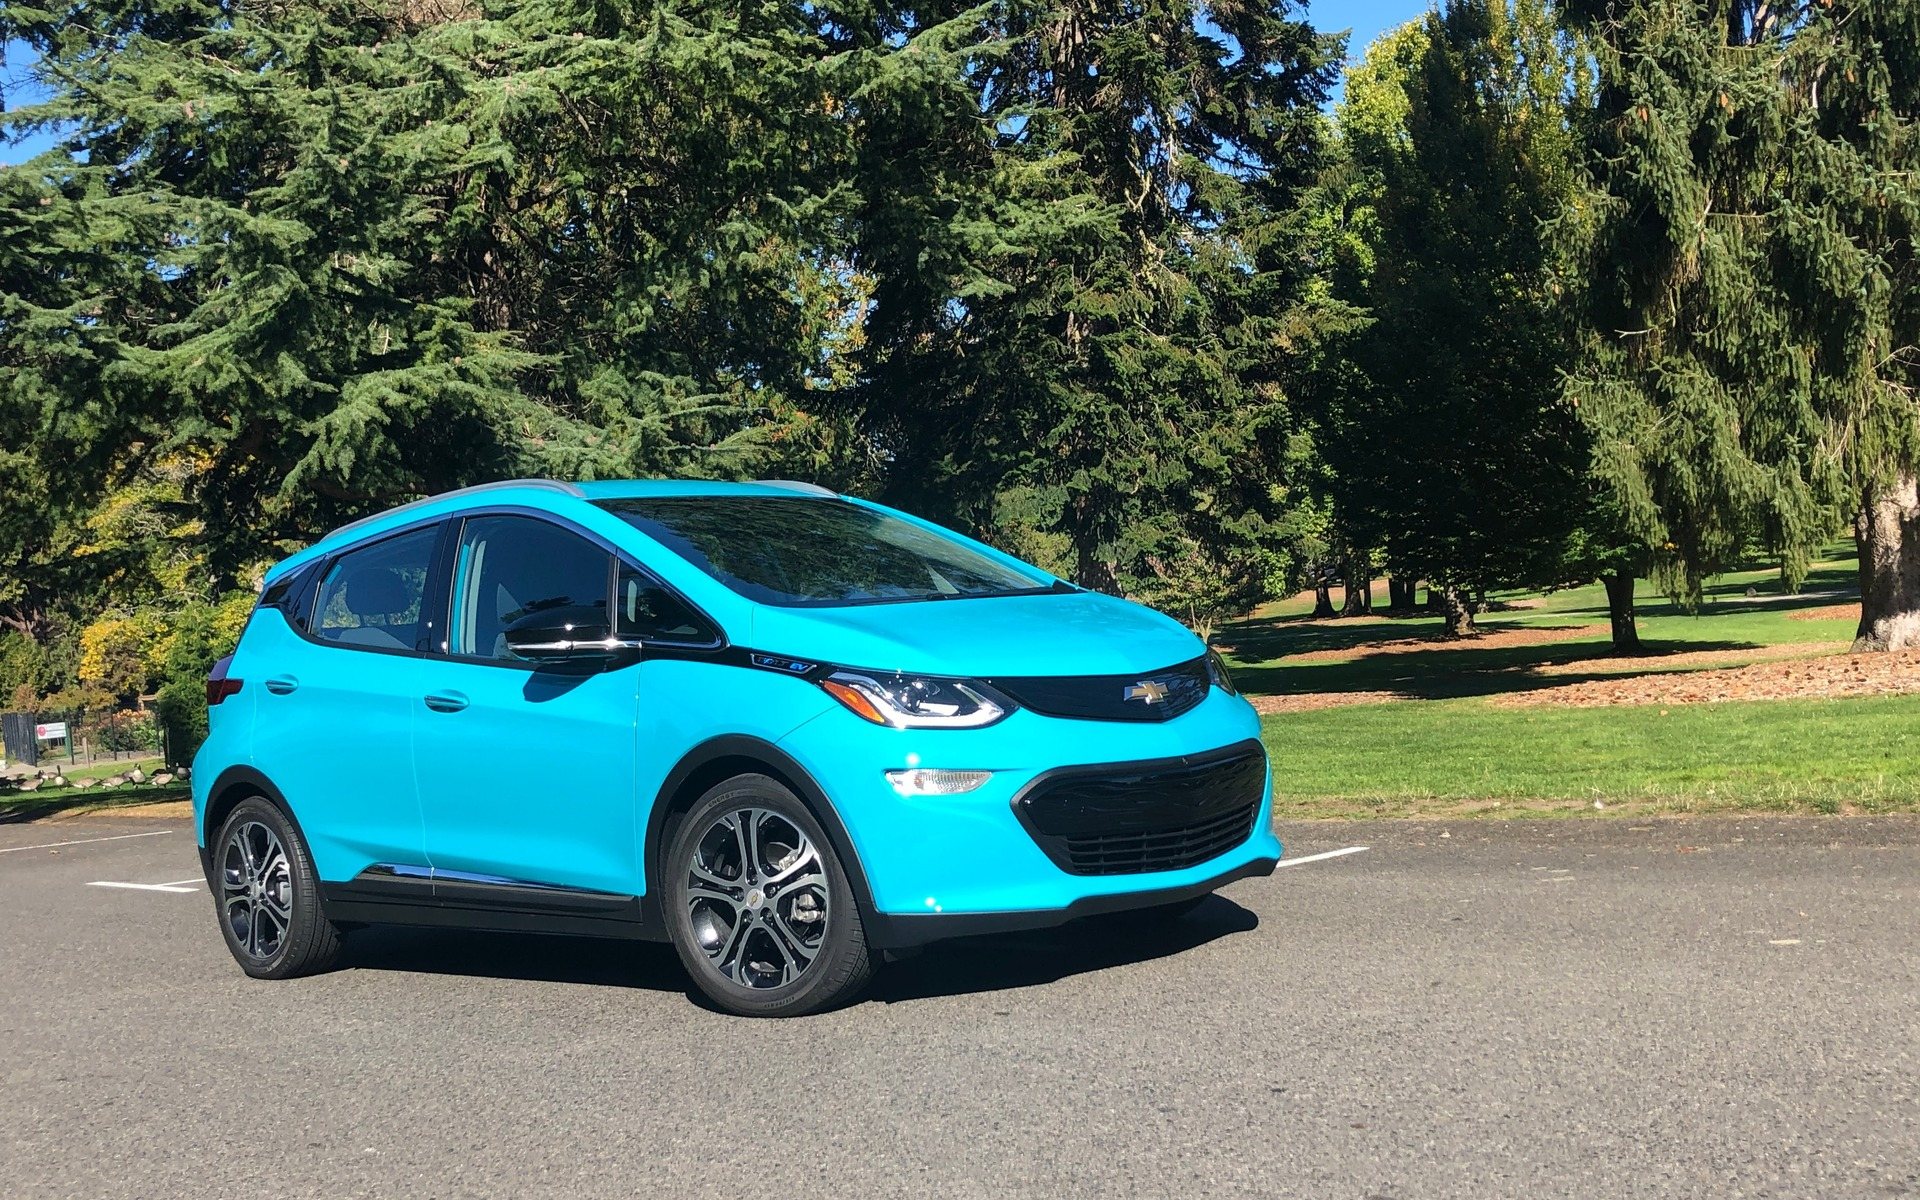 2020 Chevy Bolt New Concept